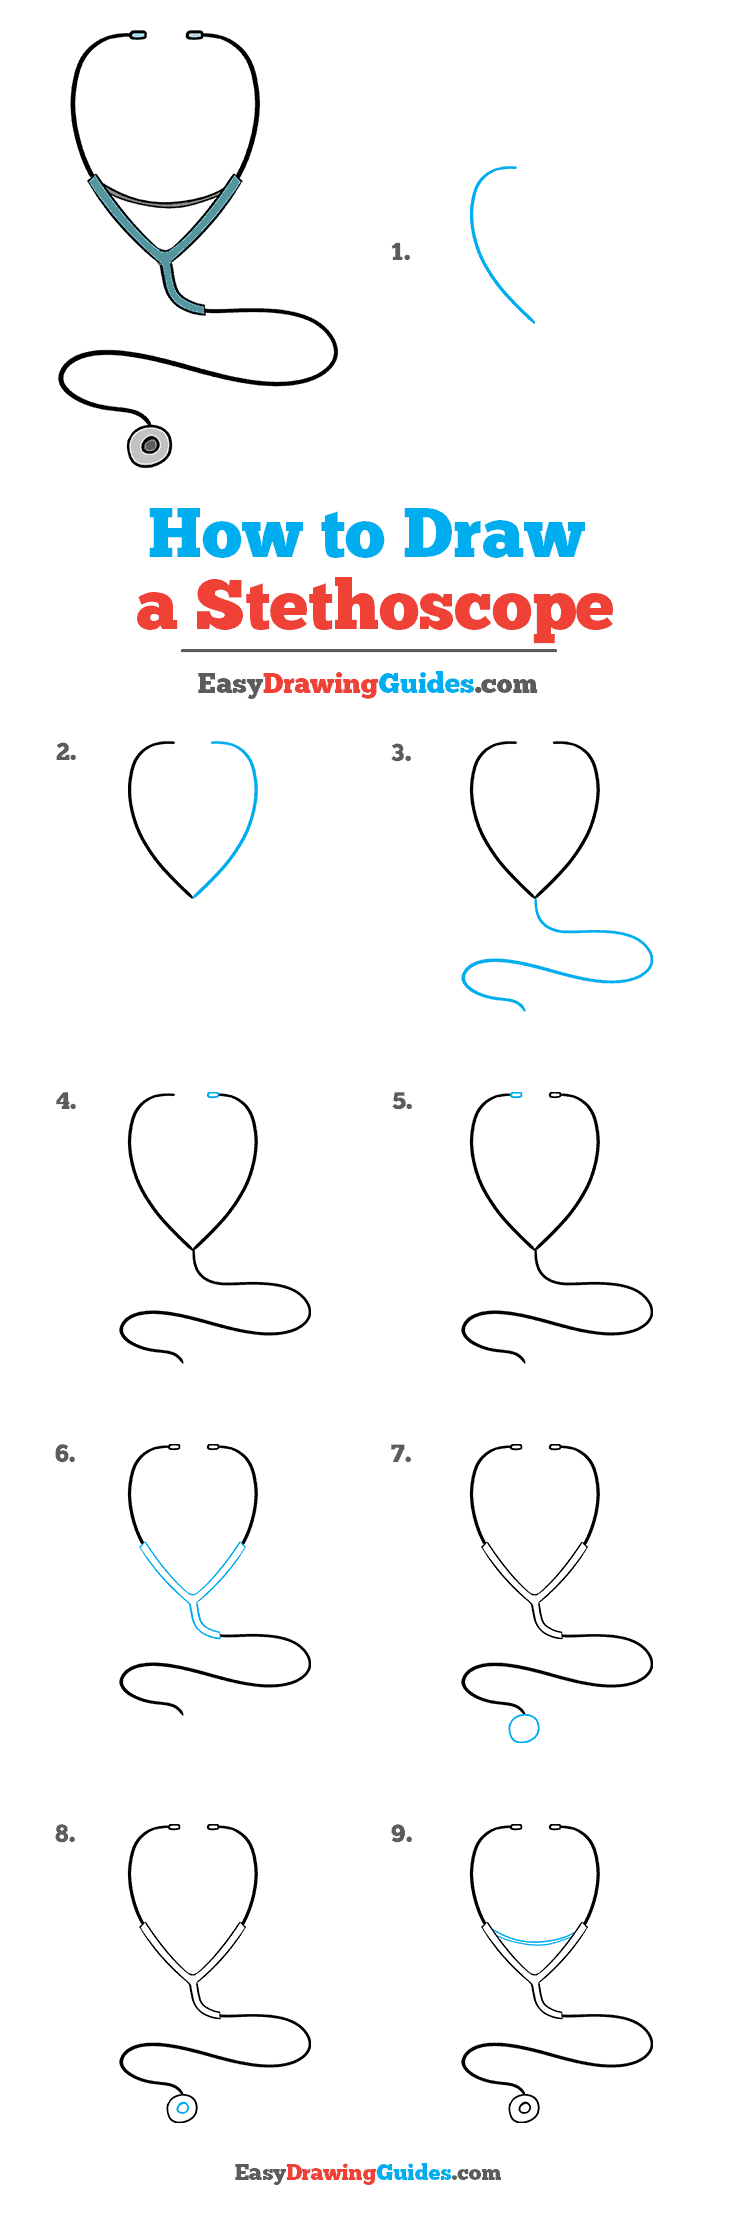 Stethoscope Drawing Easy : stethoscope, drawing, Stethoscope, Really, Drawing, Tutorial